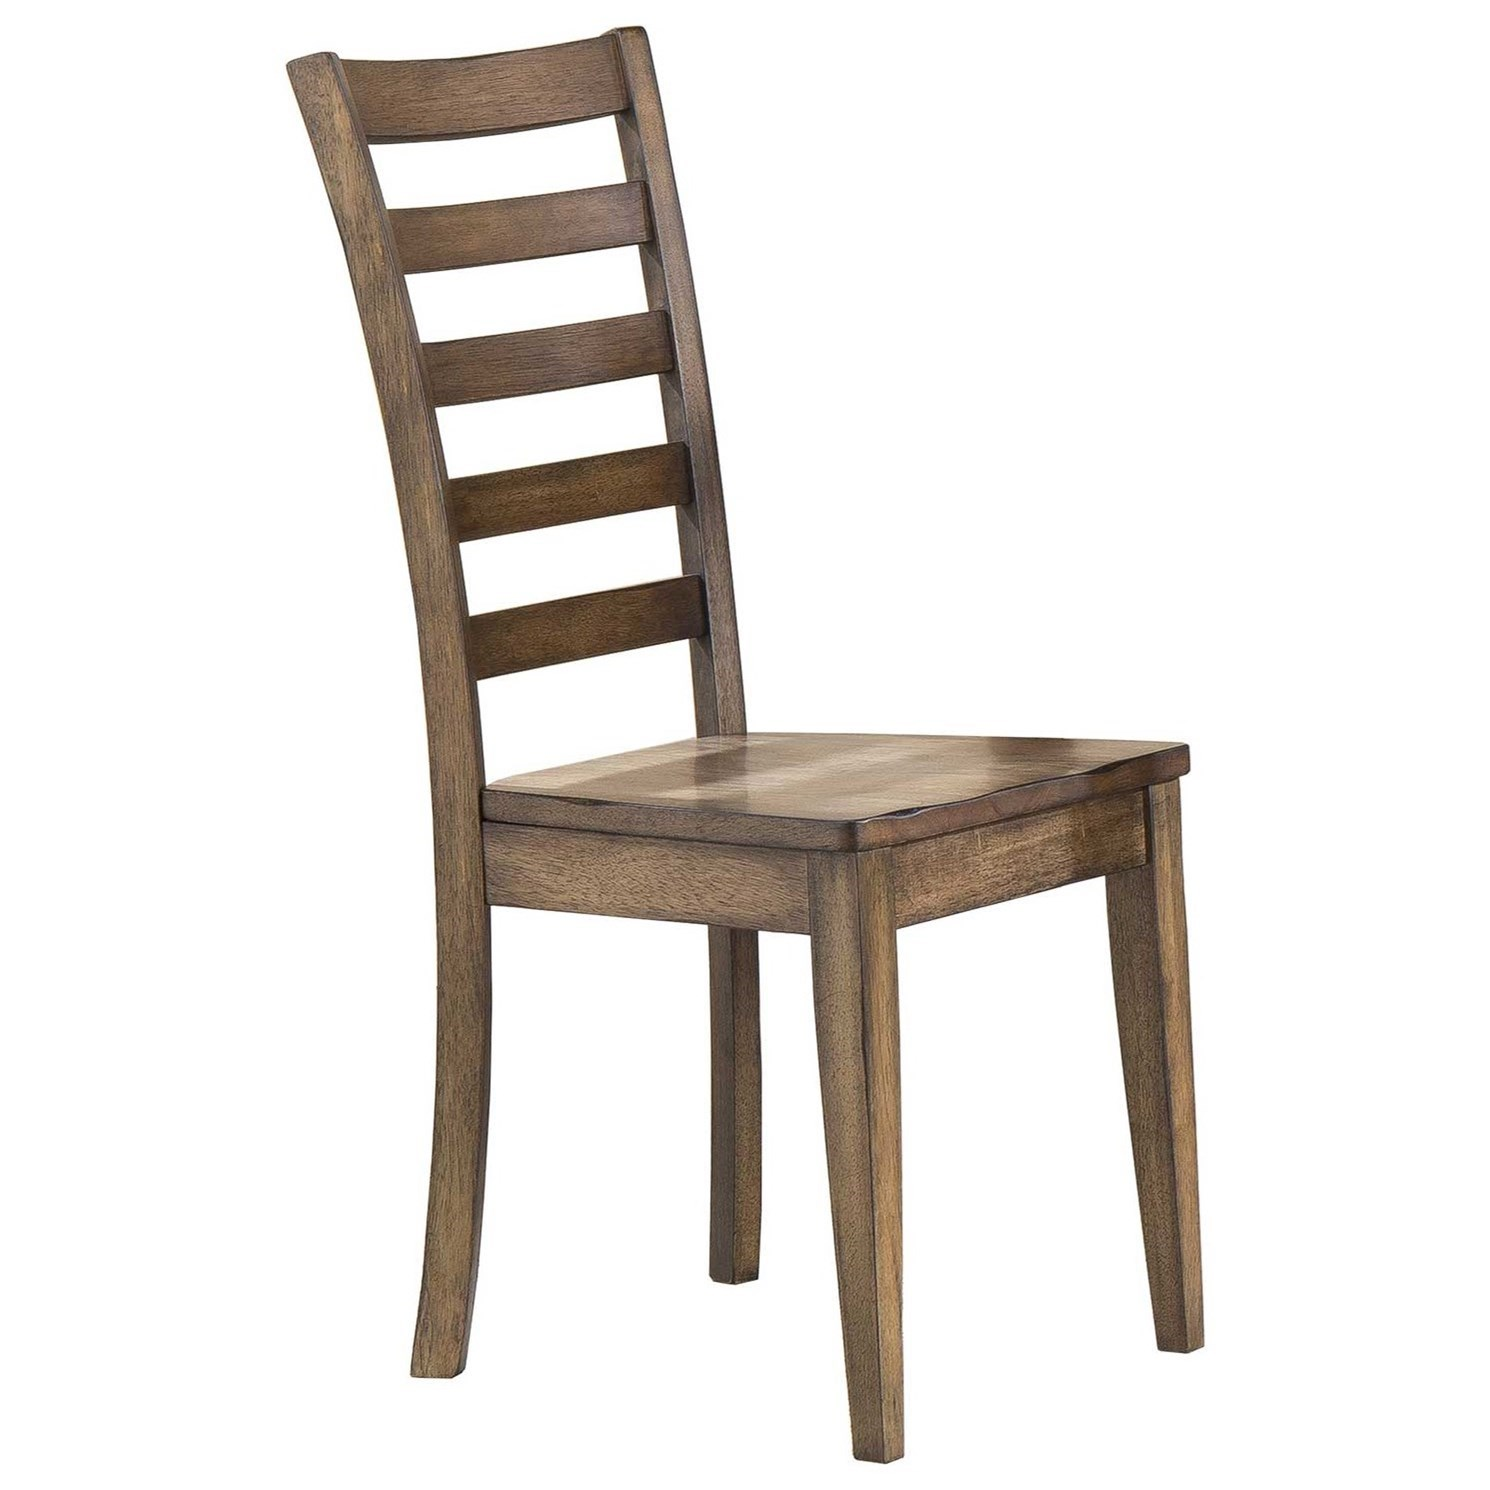 Carmel Ladderback Side Chair by Winners Only at Crowley Furniture & Mattress